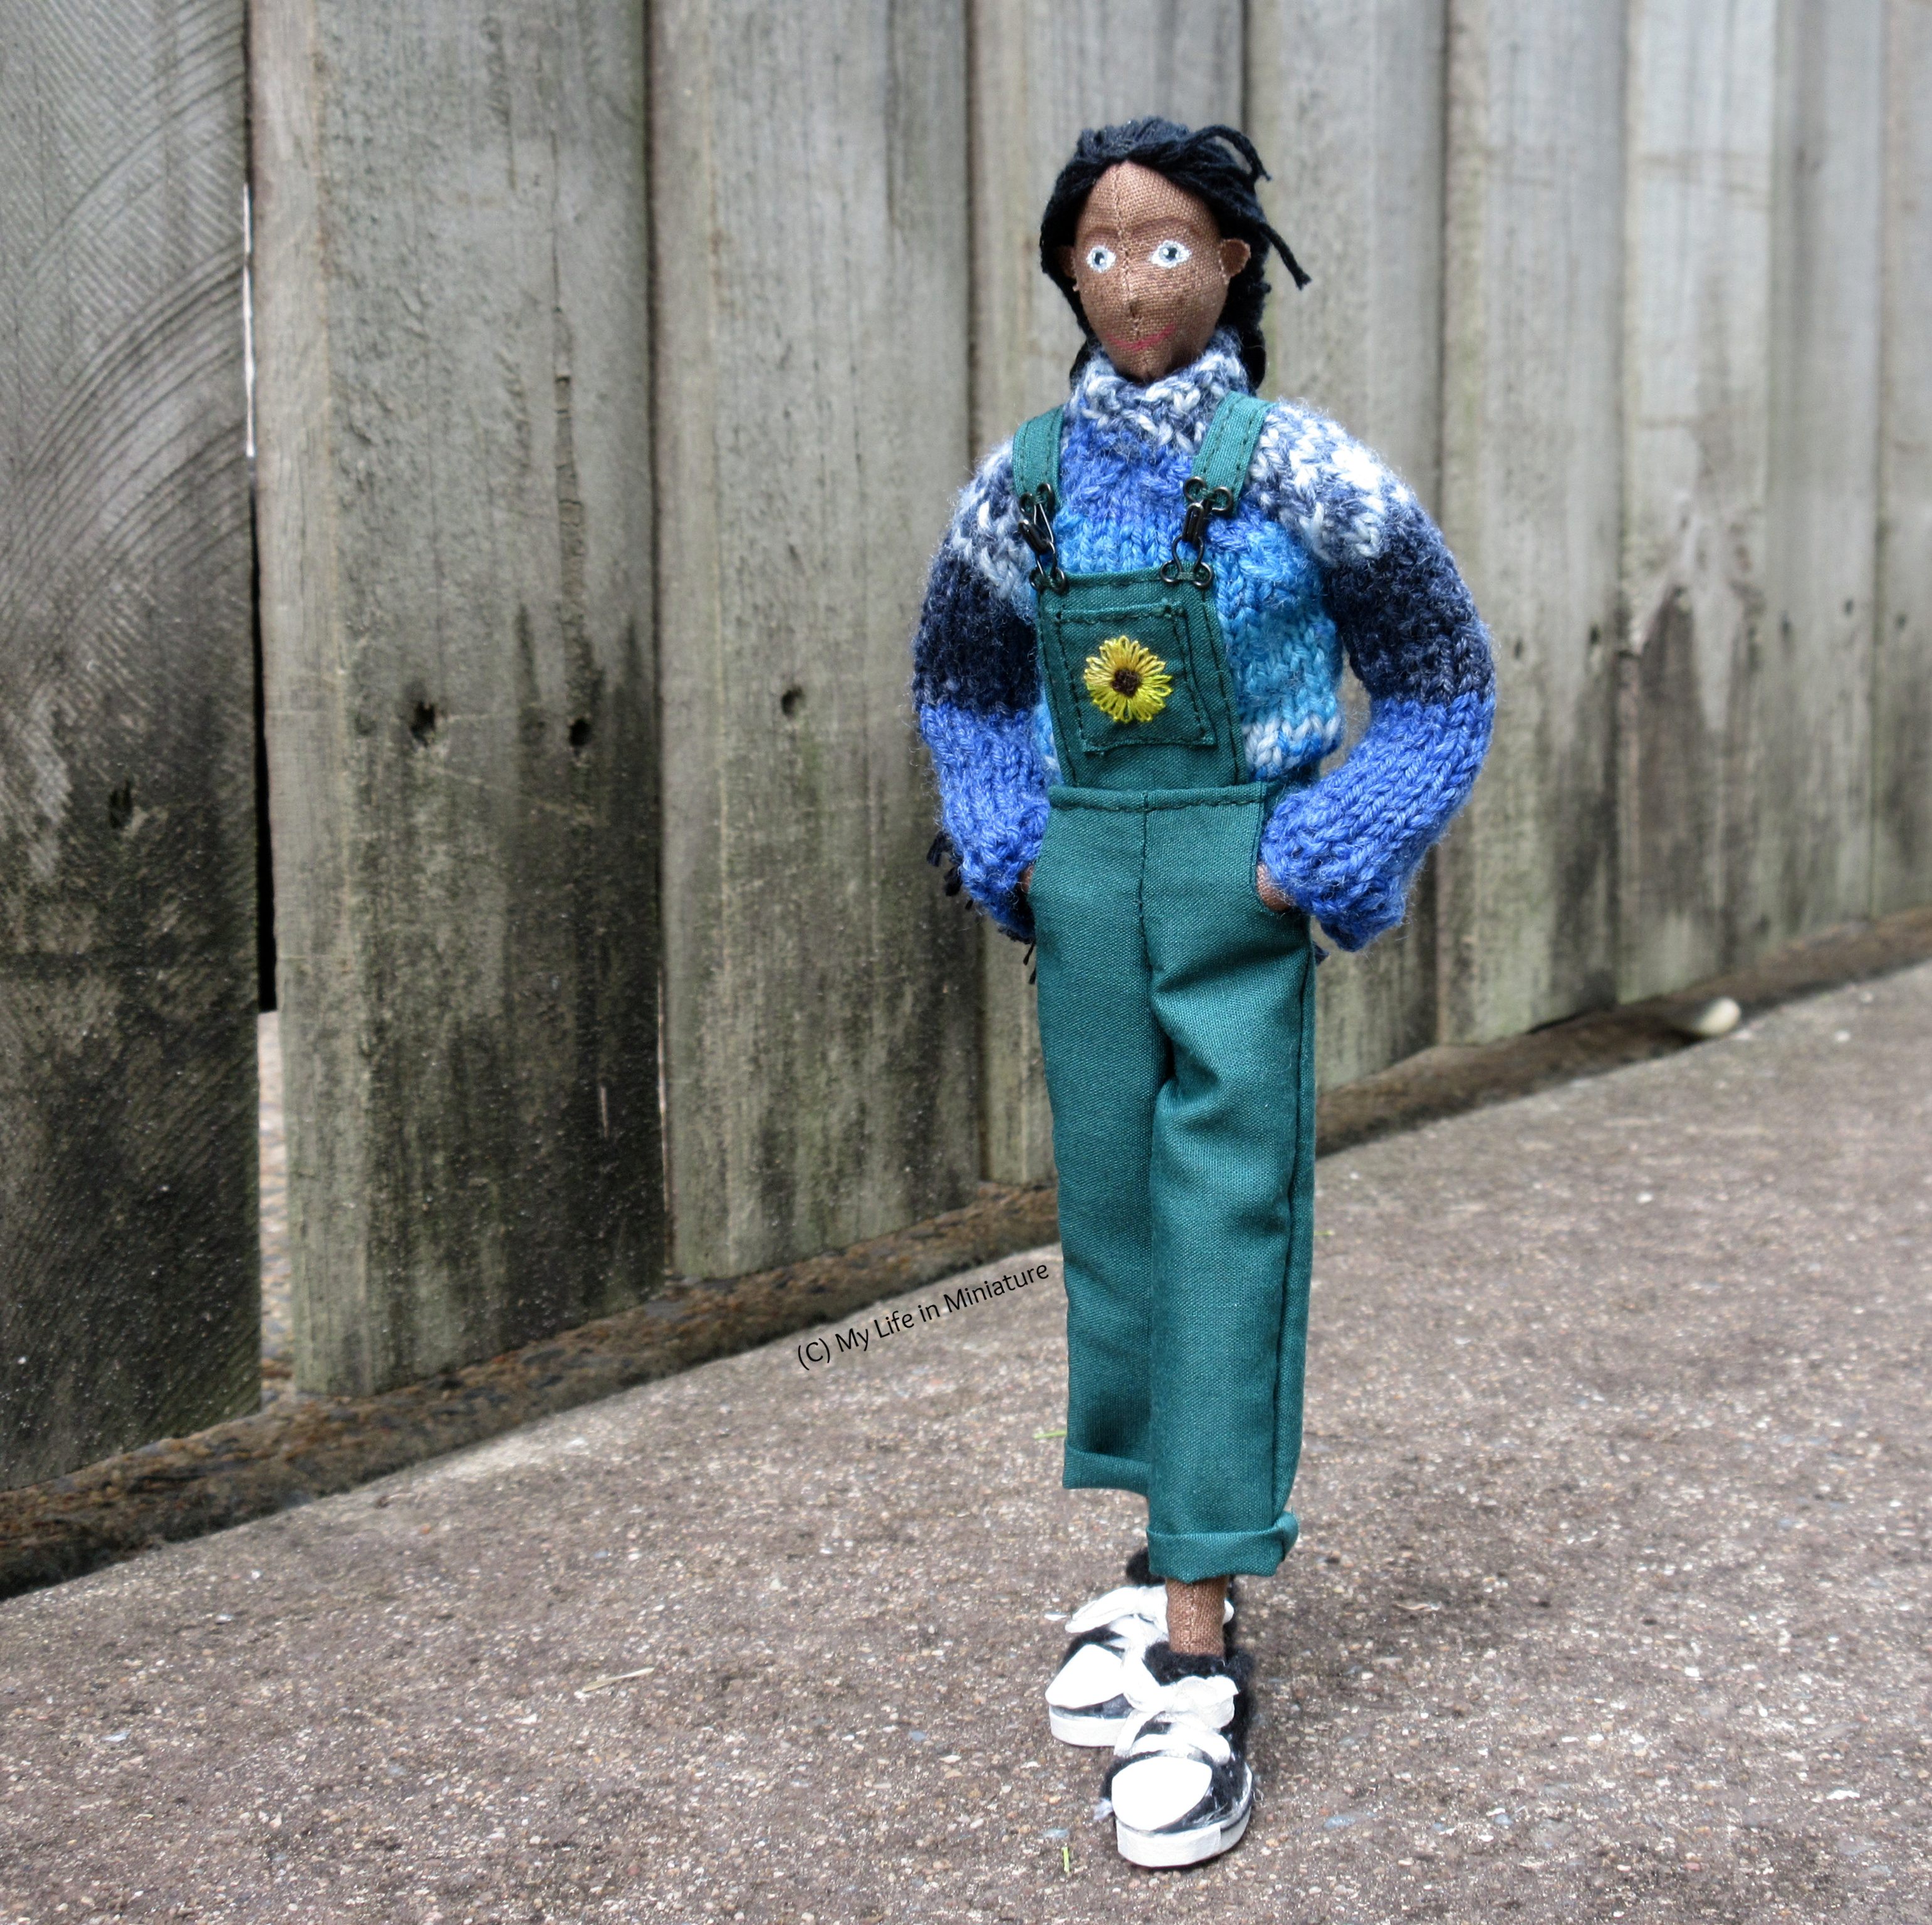 Petra walks past the camera to the left, with a wooden fence in the background. Her hands are in the side pockets of her green dungarees, and she wears her blue jumper and black high-top Converses.